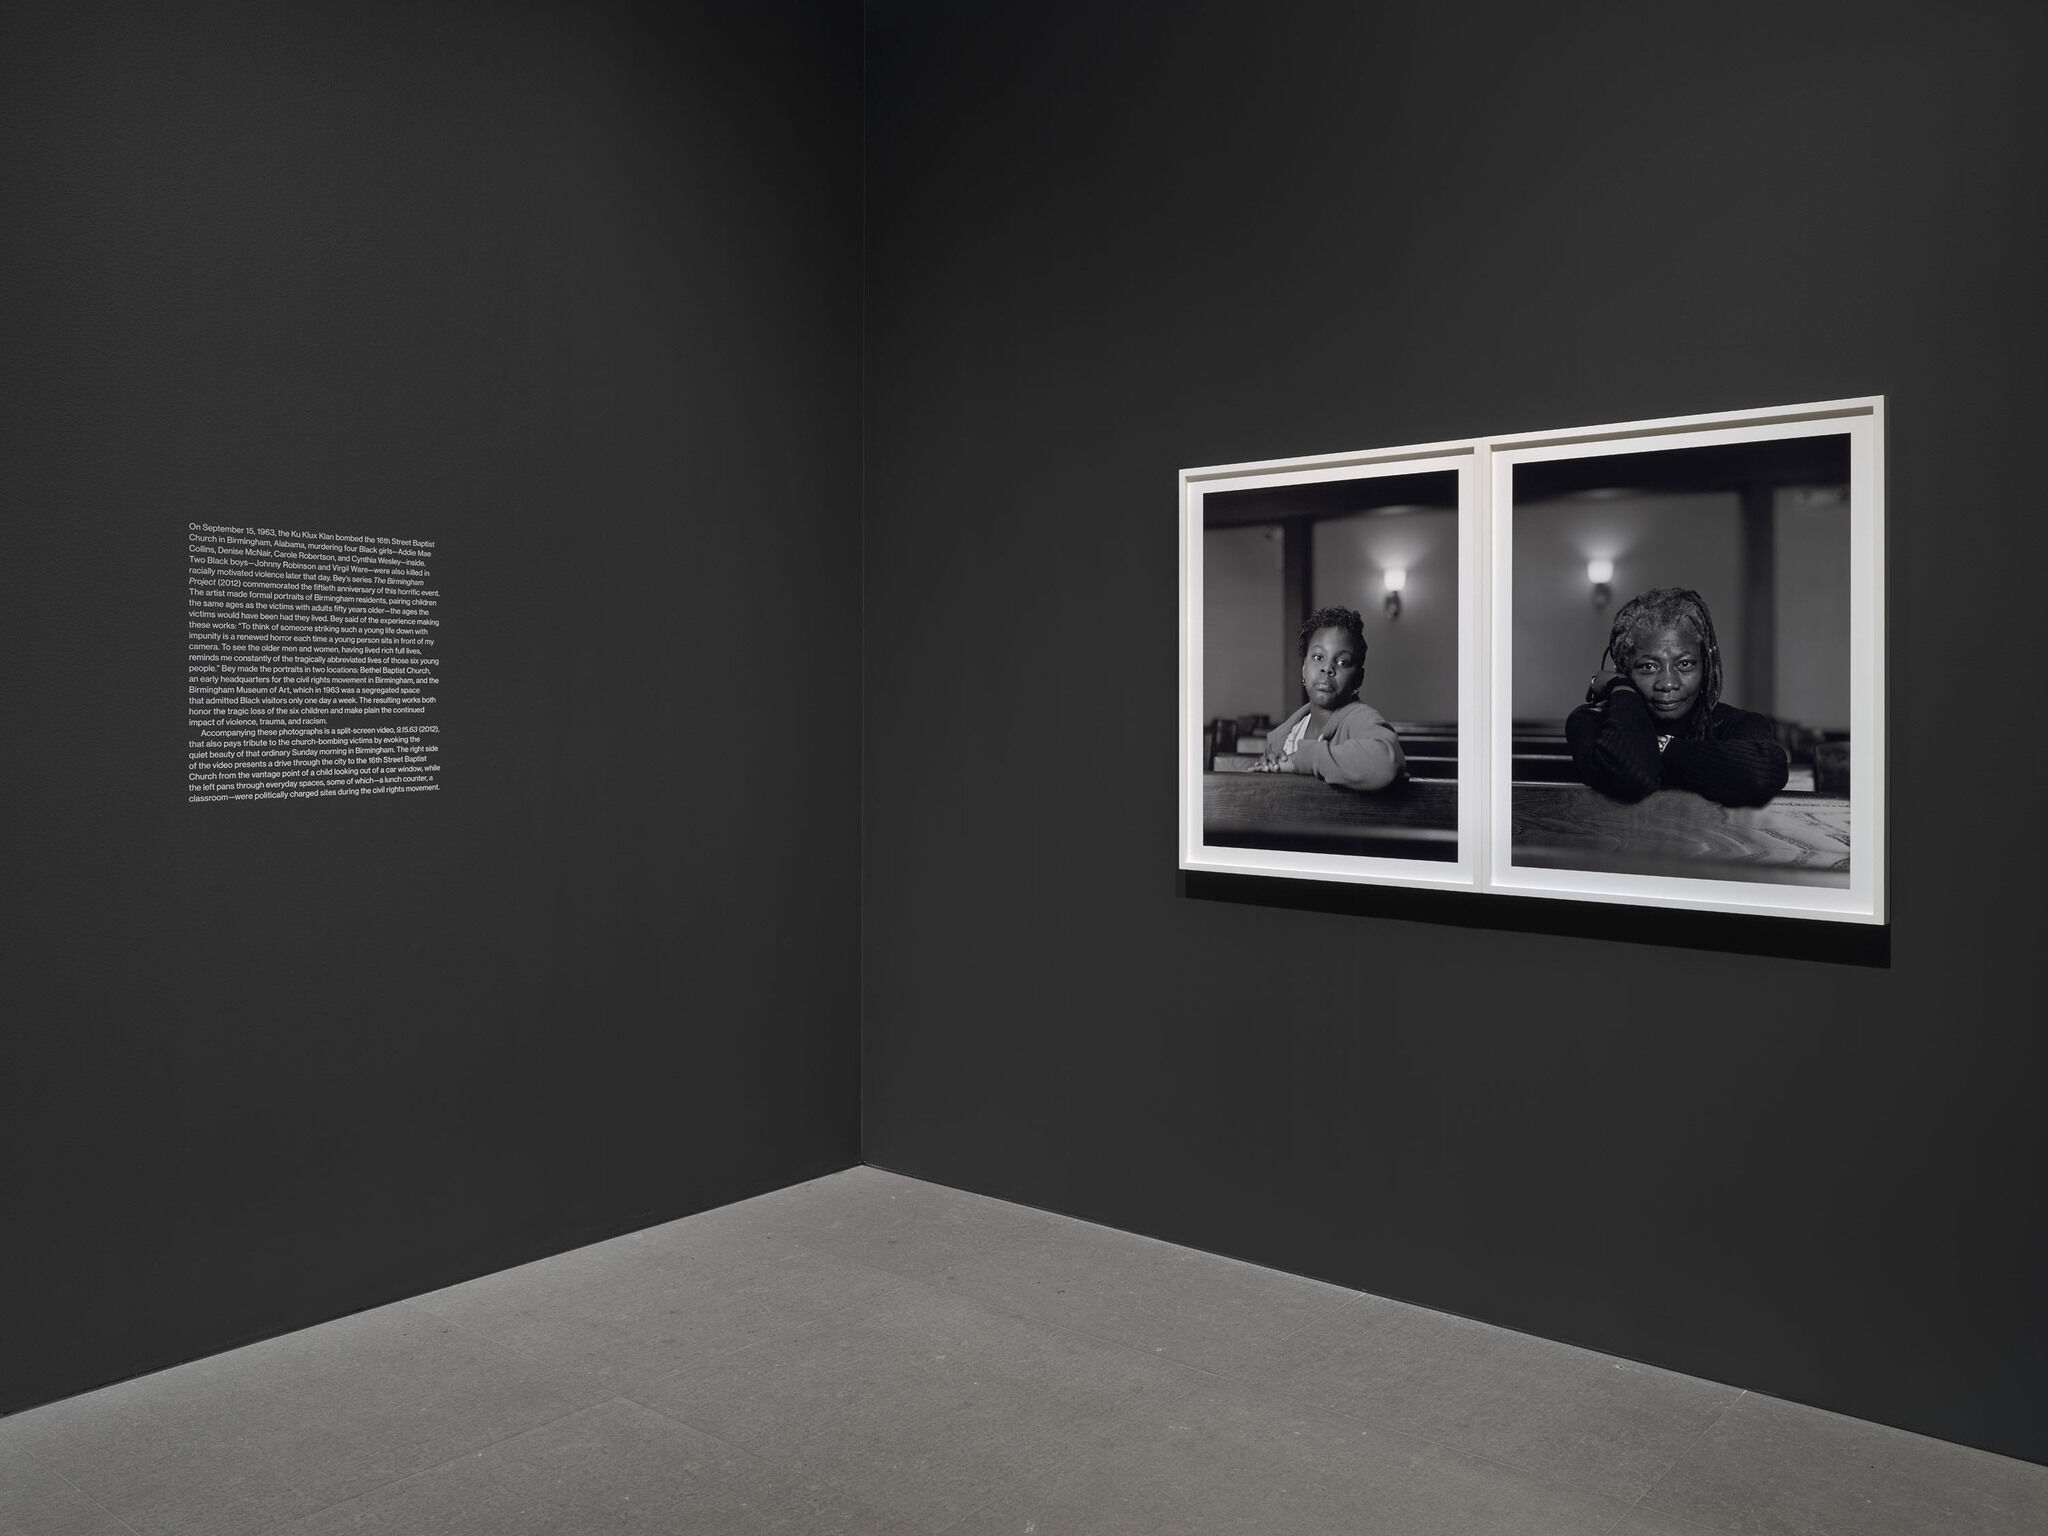 A corner of a main exhibition room with a text vinyl on one adjoining wall and a diptych piece from the Dawoud Bey exhibition on the other.